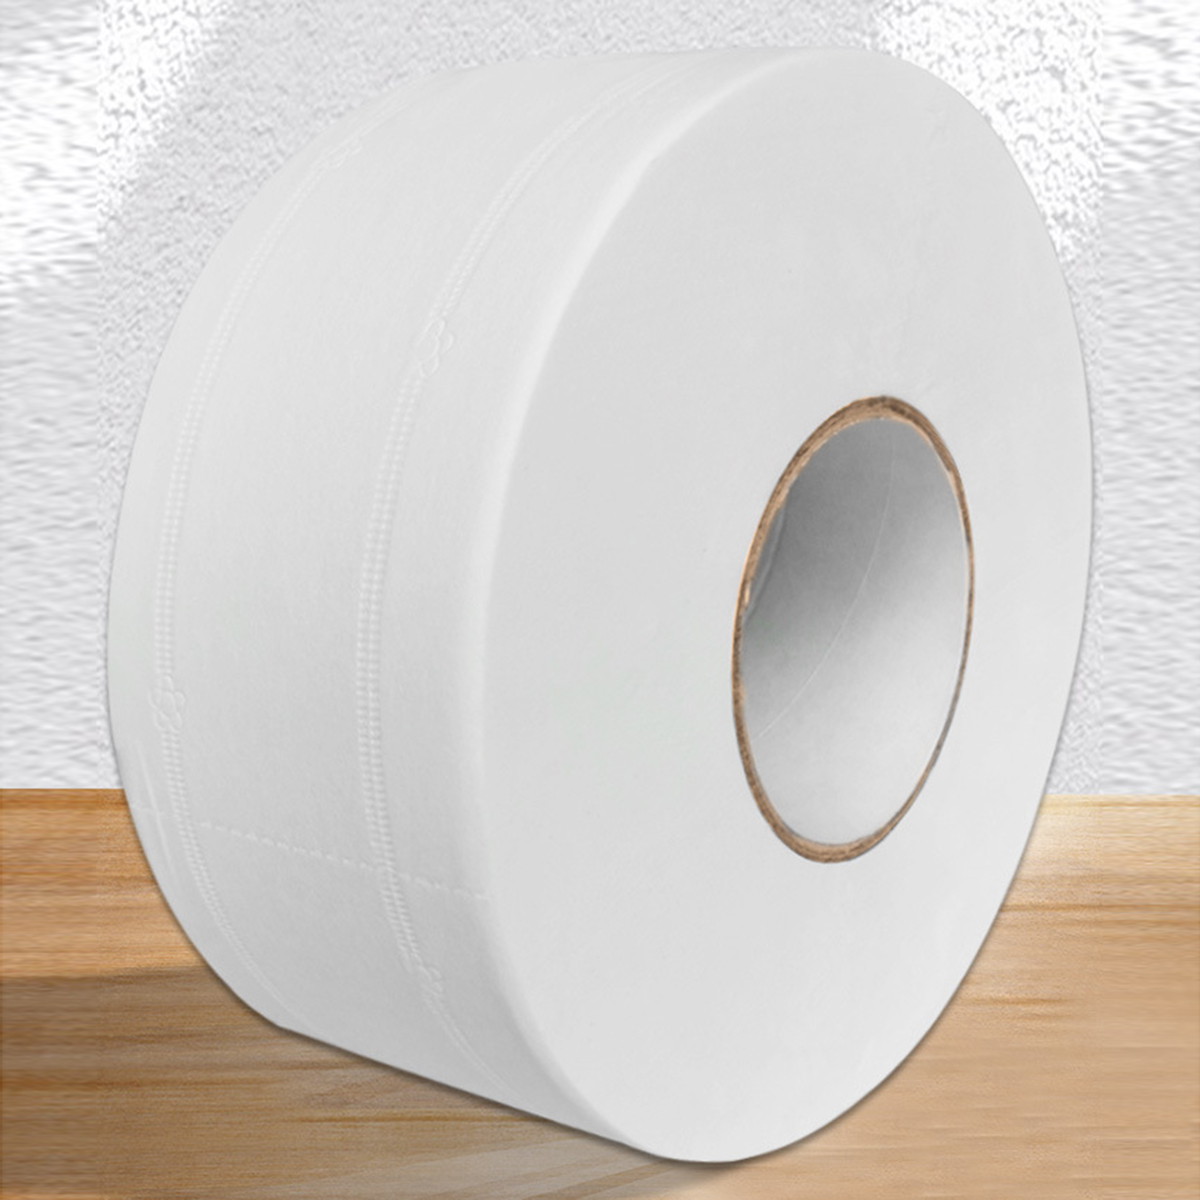 1 Roll Top Quality Jumbo Roll Toilet Paper 4-Layer Native Wood Soft Toilet Paper Pulp Home Rolling Paper Strong Water Absorption